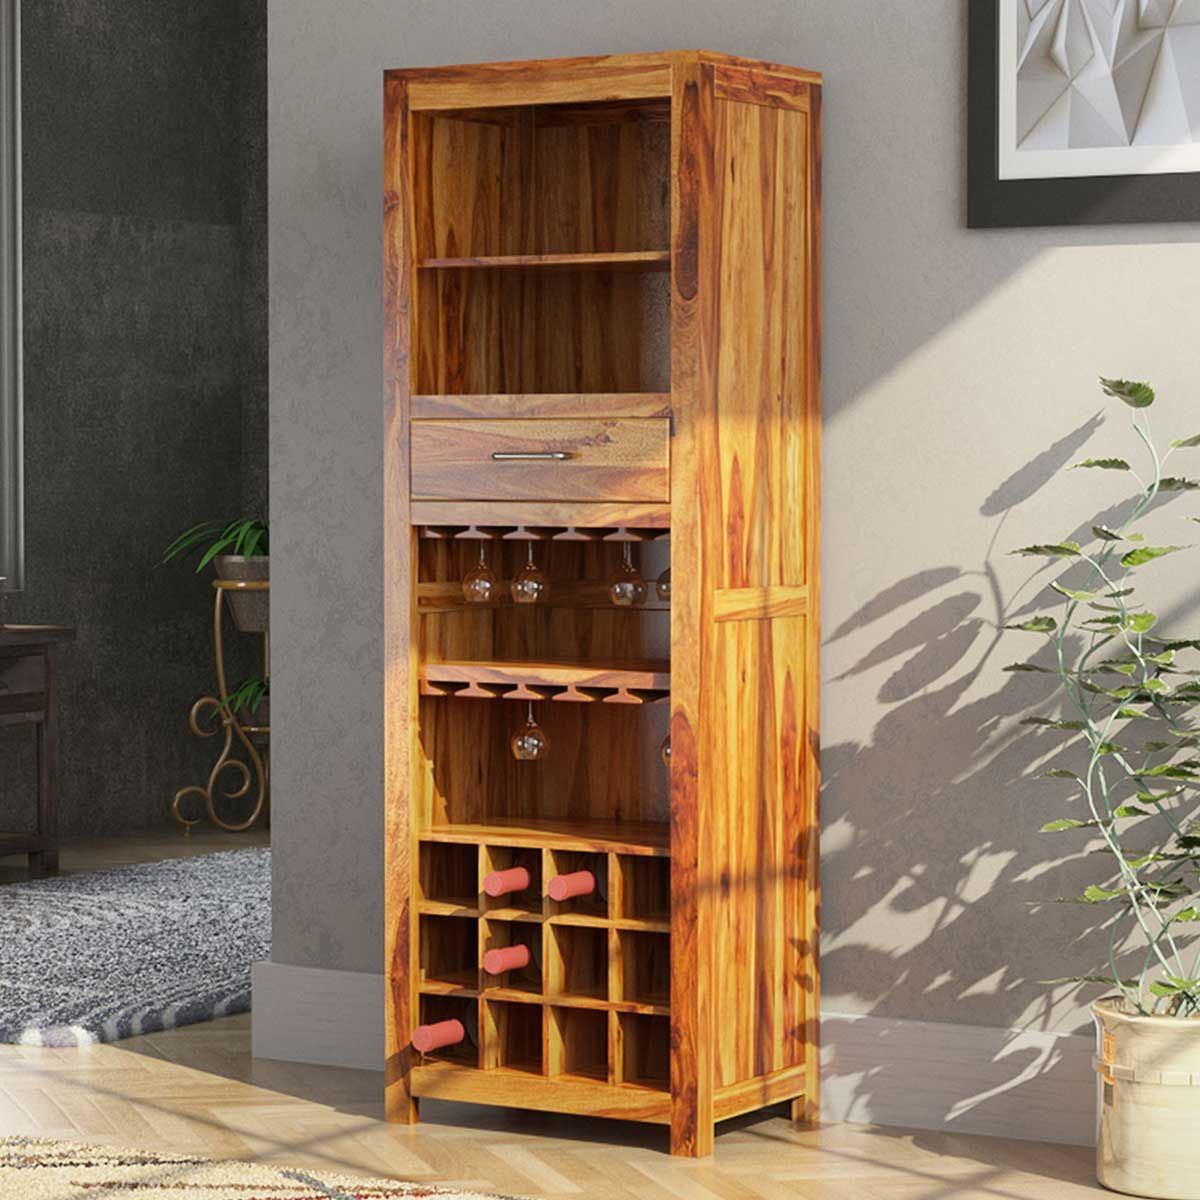 California Contemporary Handcrafted Solid Wood Rustic Tall Bar